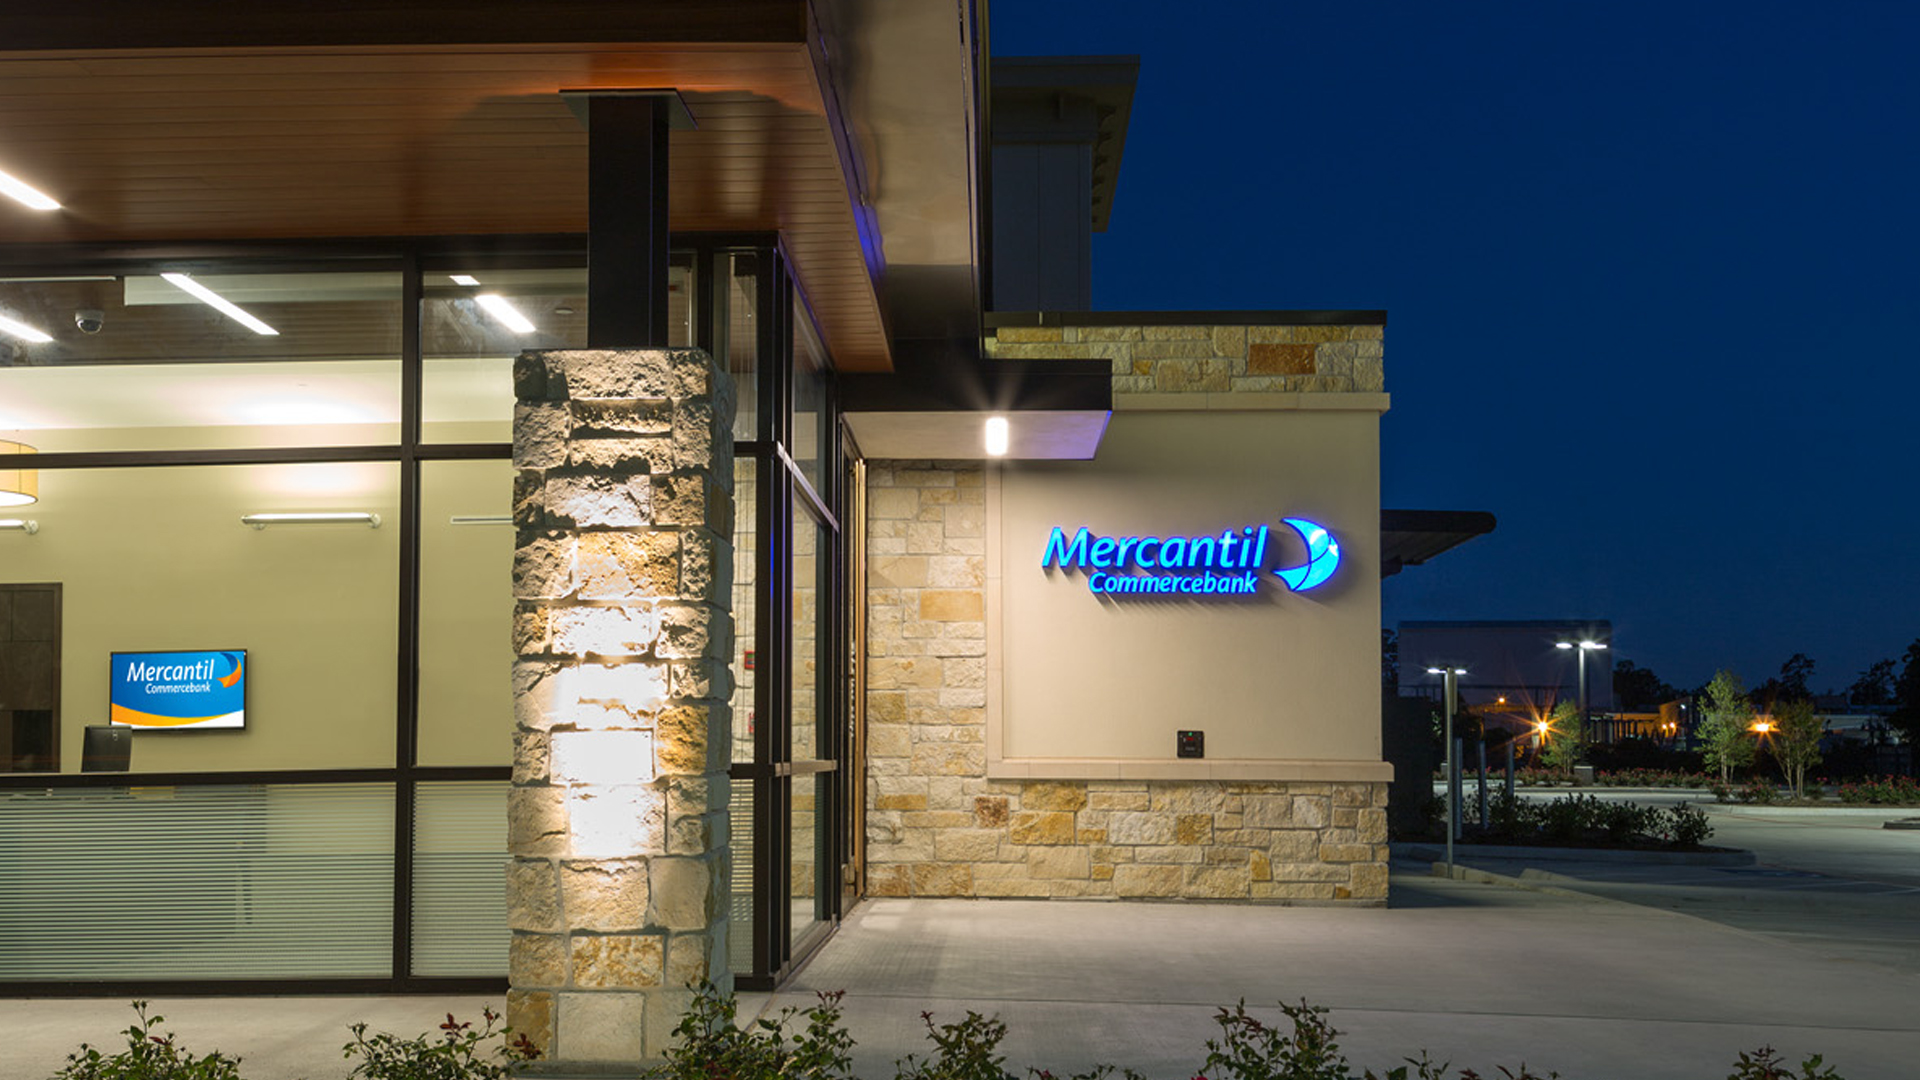 Commercial Financial Retail Design Mercantil CommercebankThe Woodlands Stone Timber Details